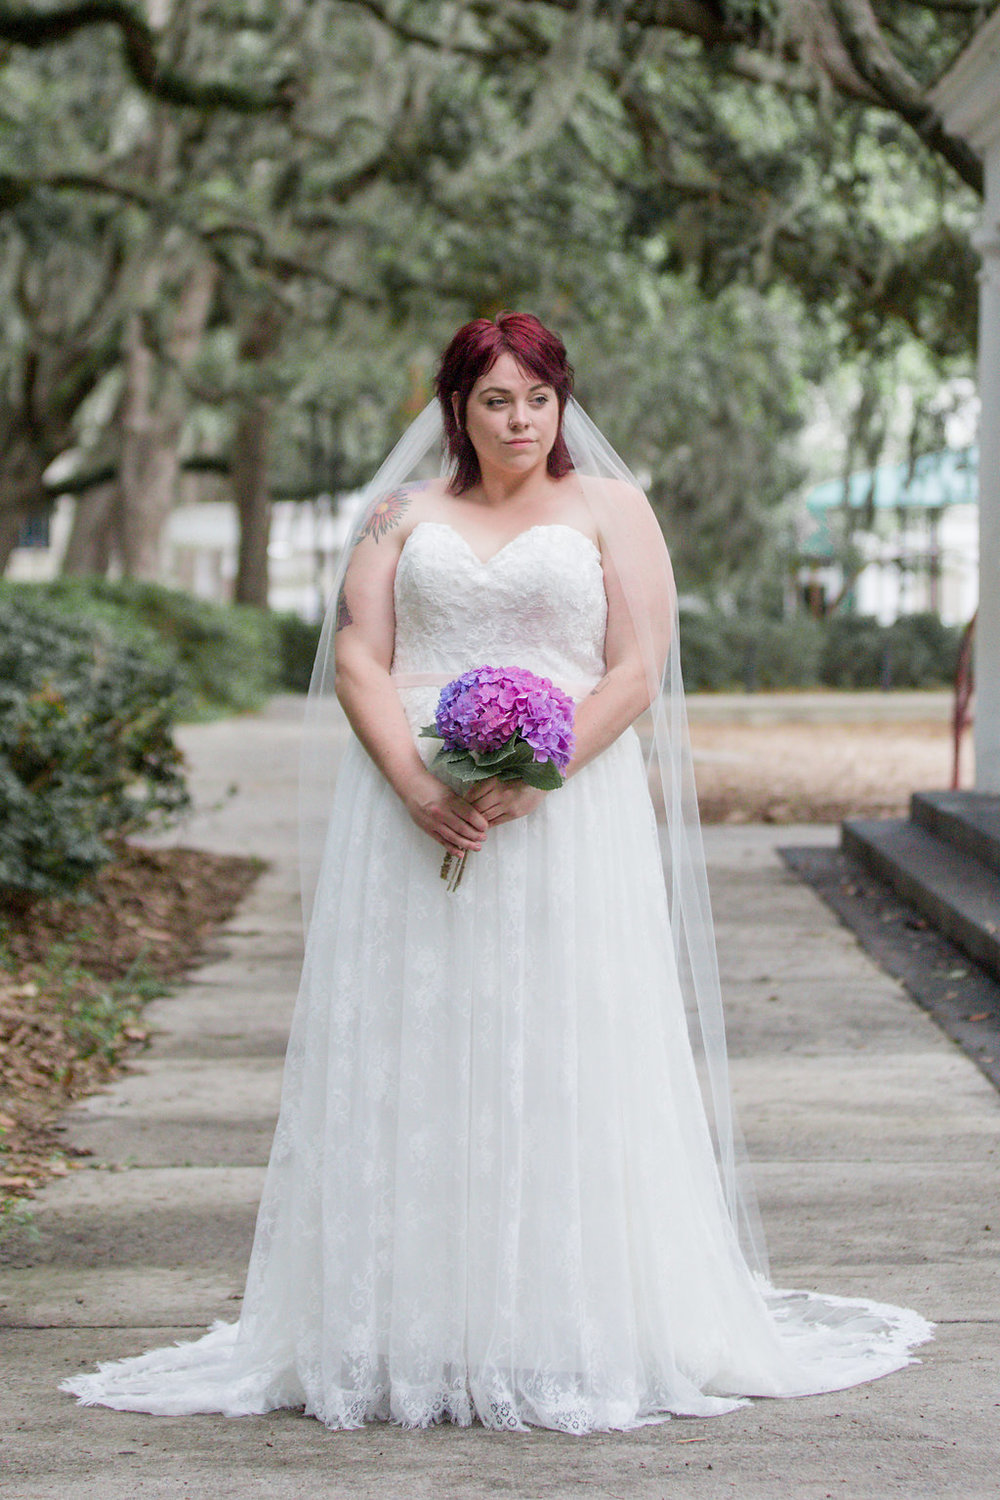 ivory-and-beau-bridal-boutique-alexis-sweet-photography-plus-sized-wedding-gowns-savannah-ga-plus-sized-wedding-dress-savannah-ga-9.jpg